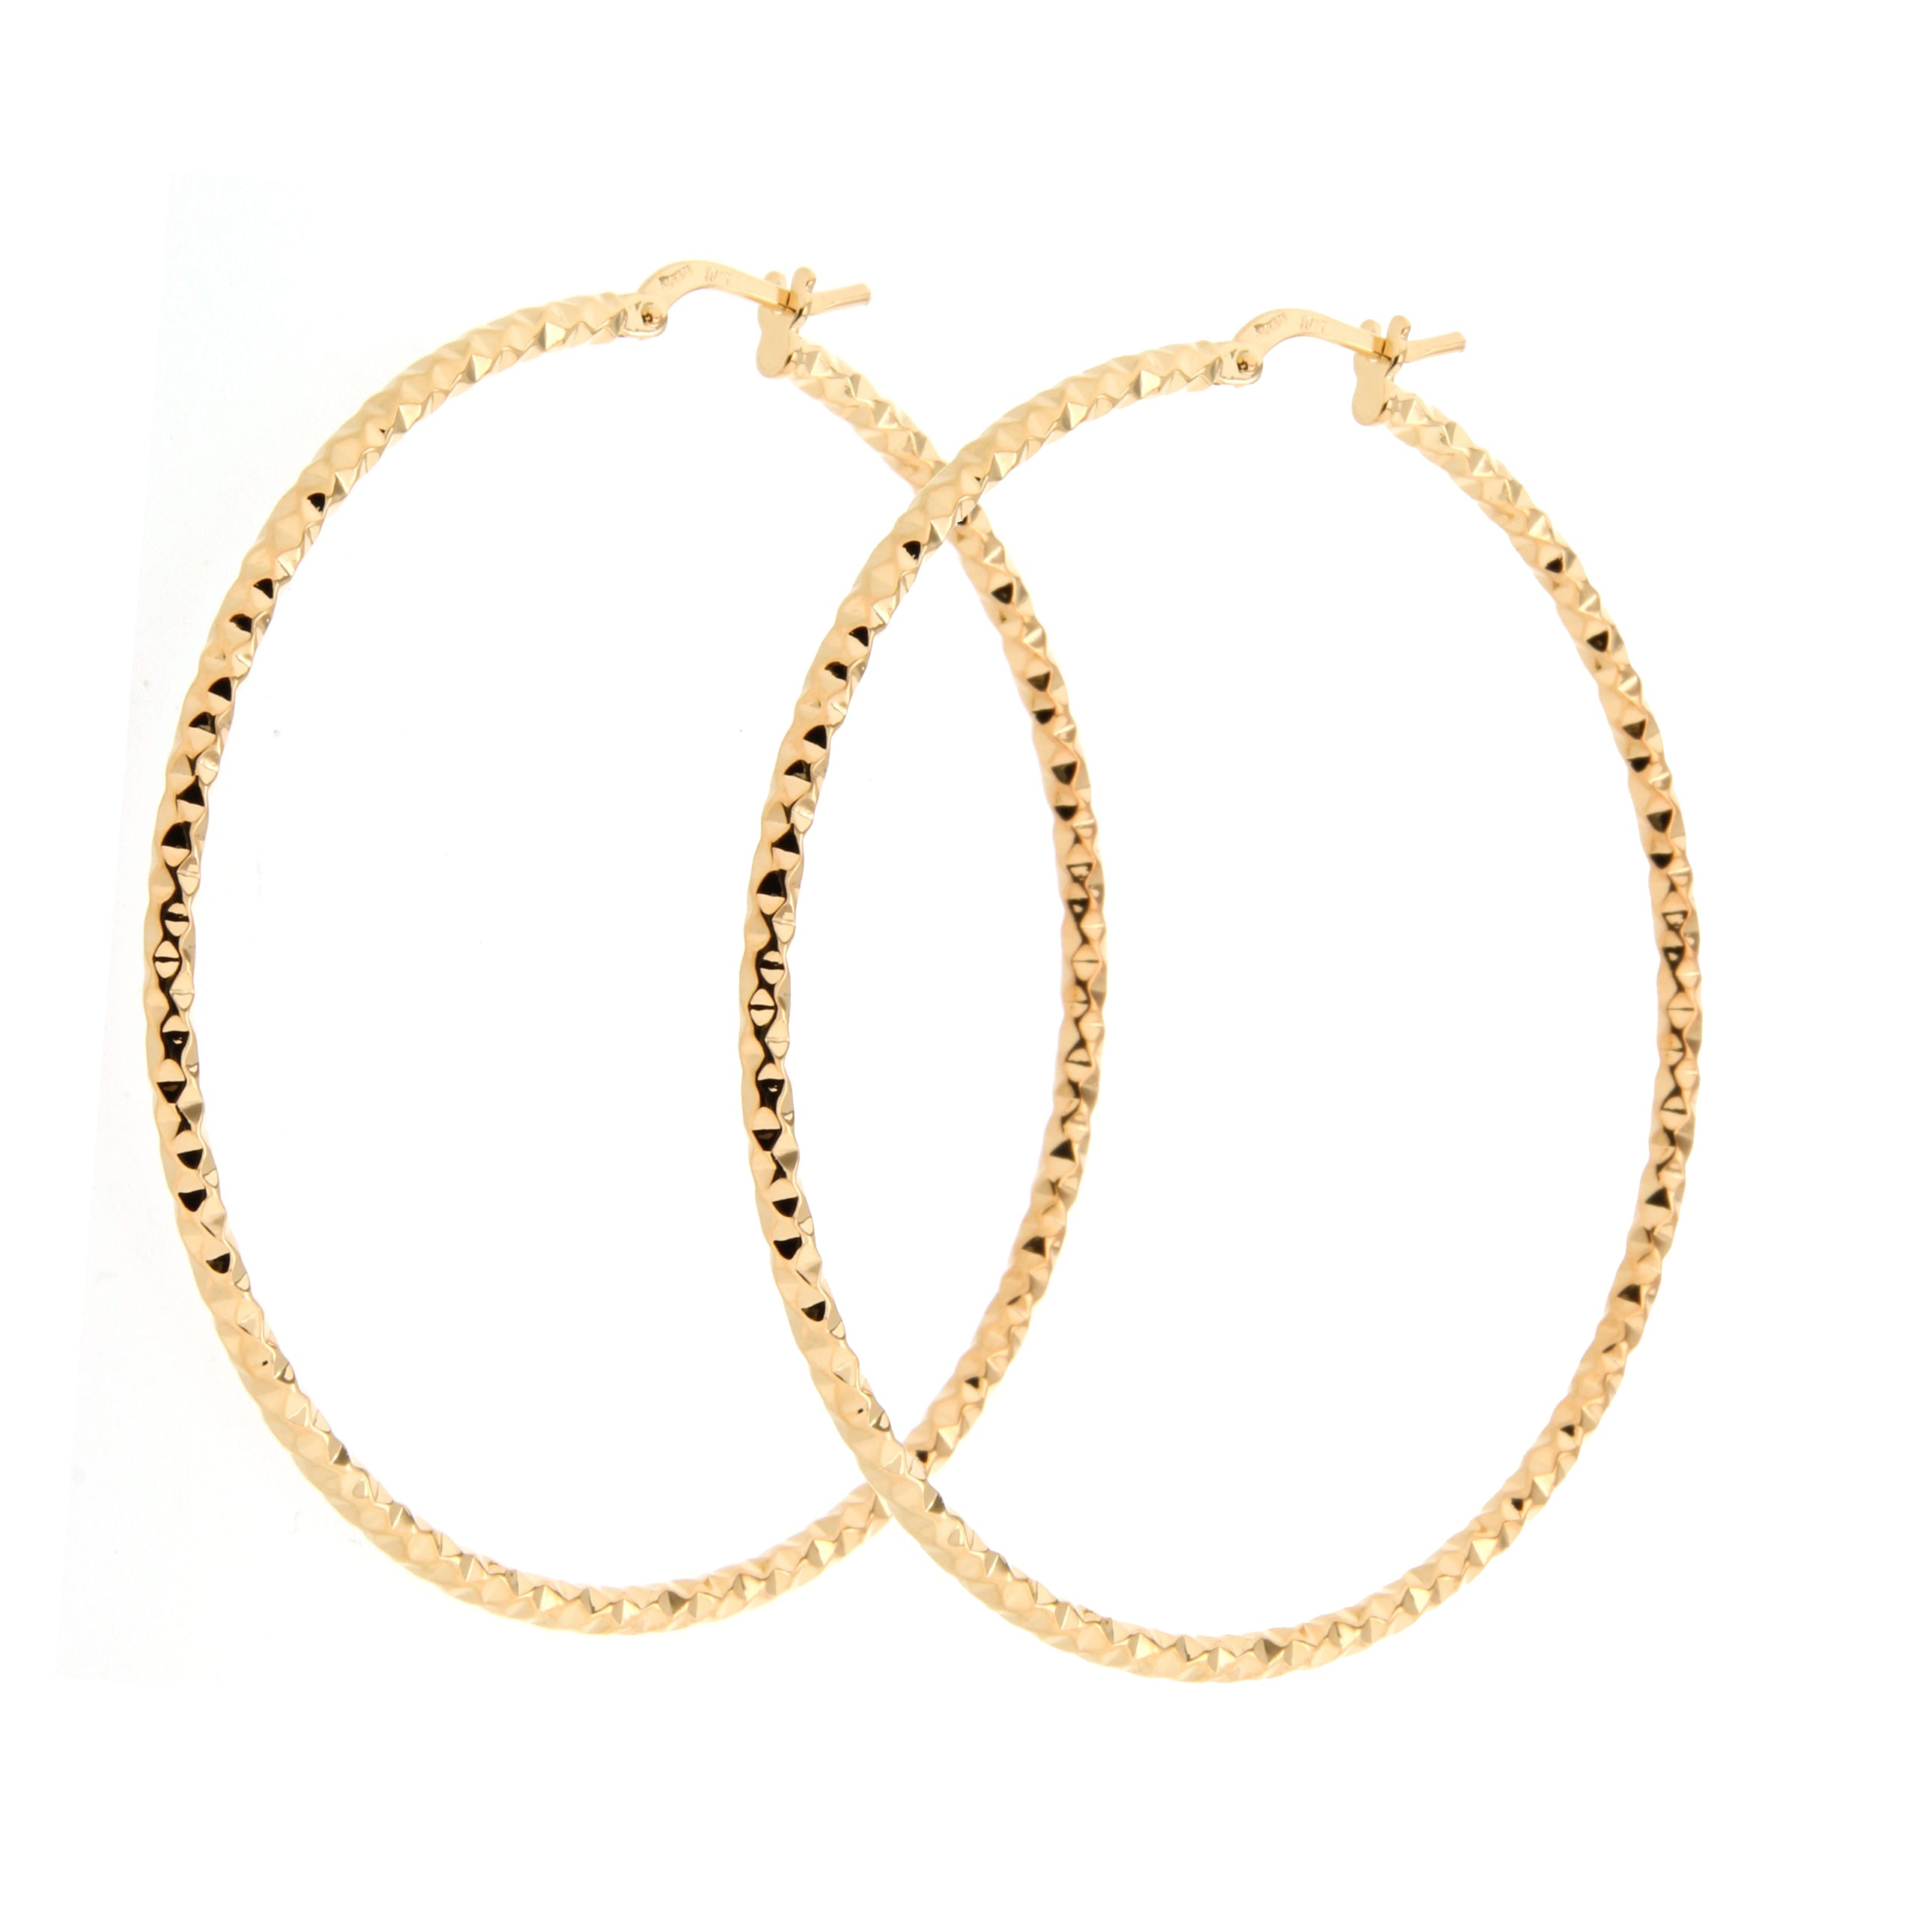 Forever Last 18k Gold Plated Women's Diamond Cut Larger Hoops Earrings